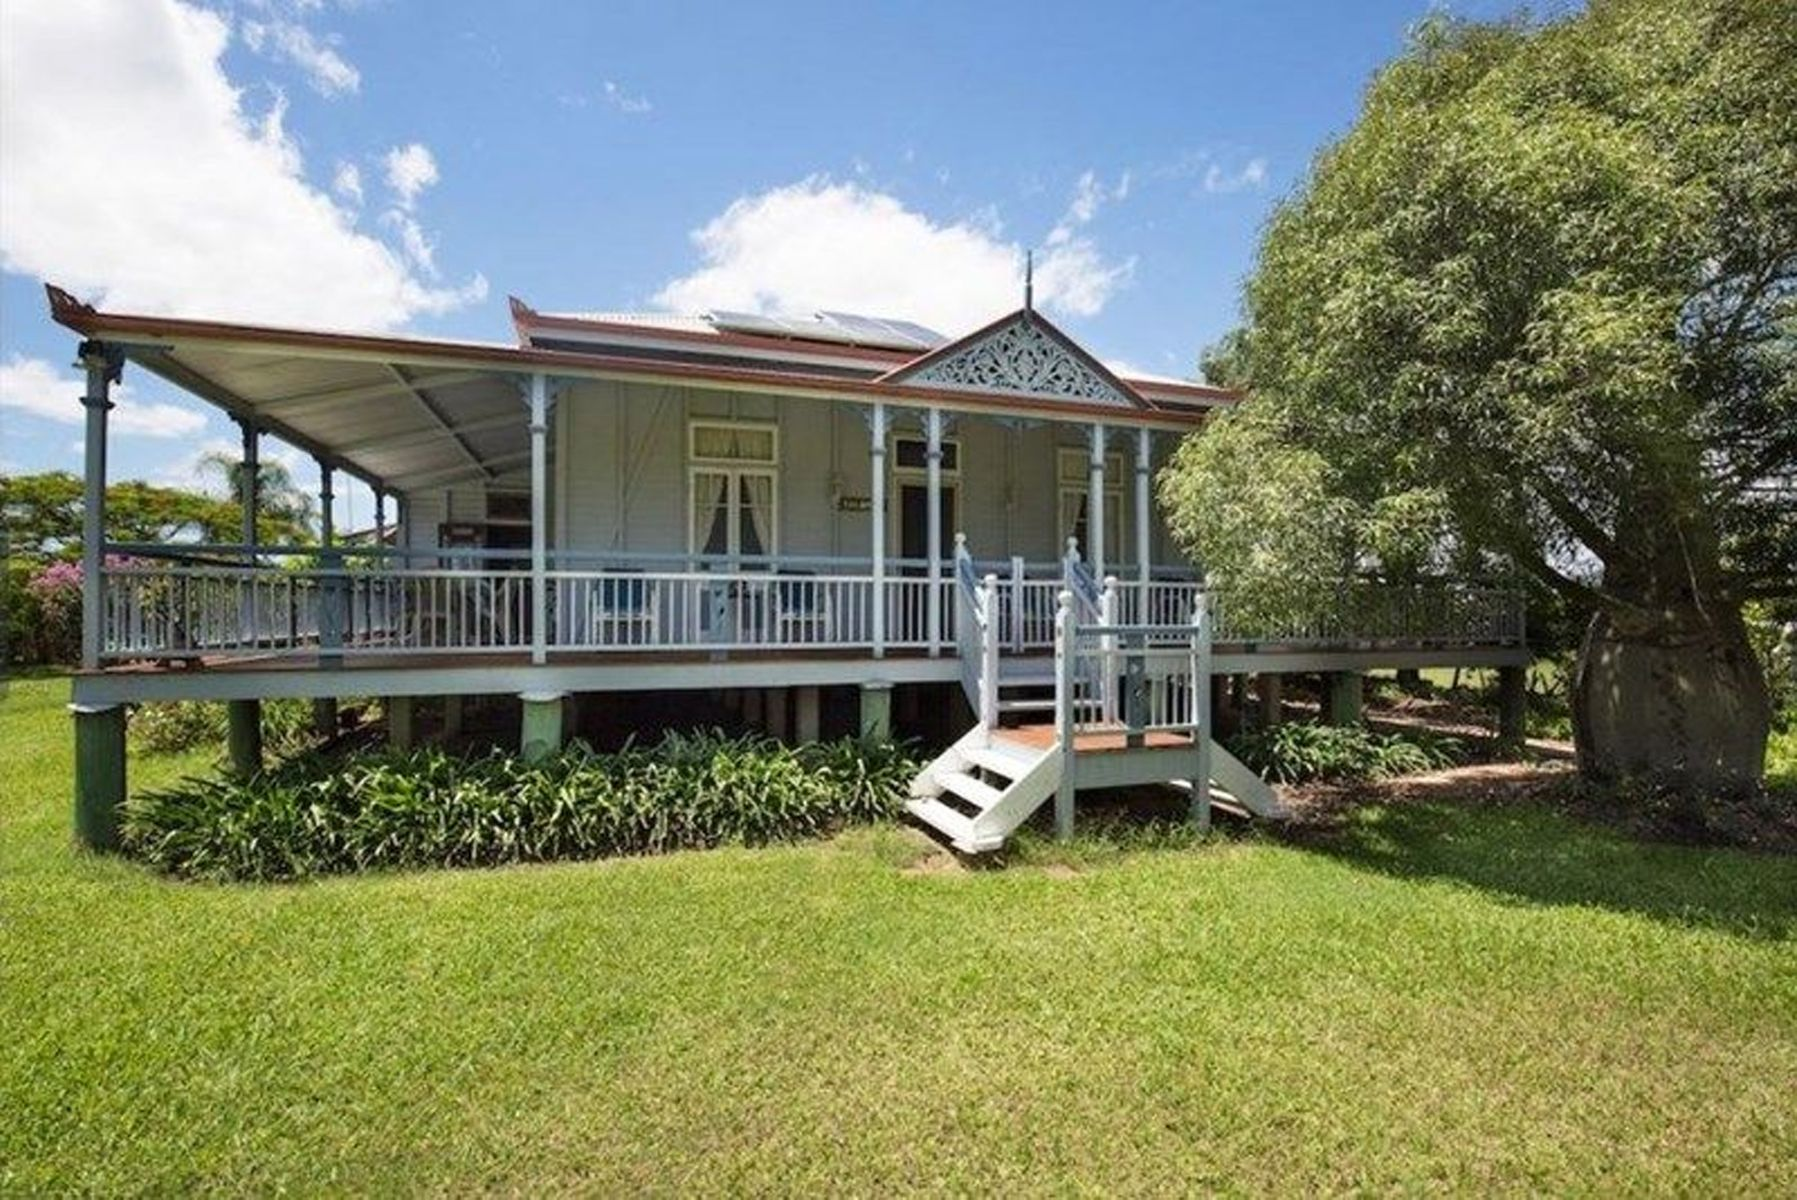 1657 Wallaville Goondoon Road, Wallaville, QLD 4671